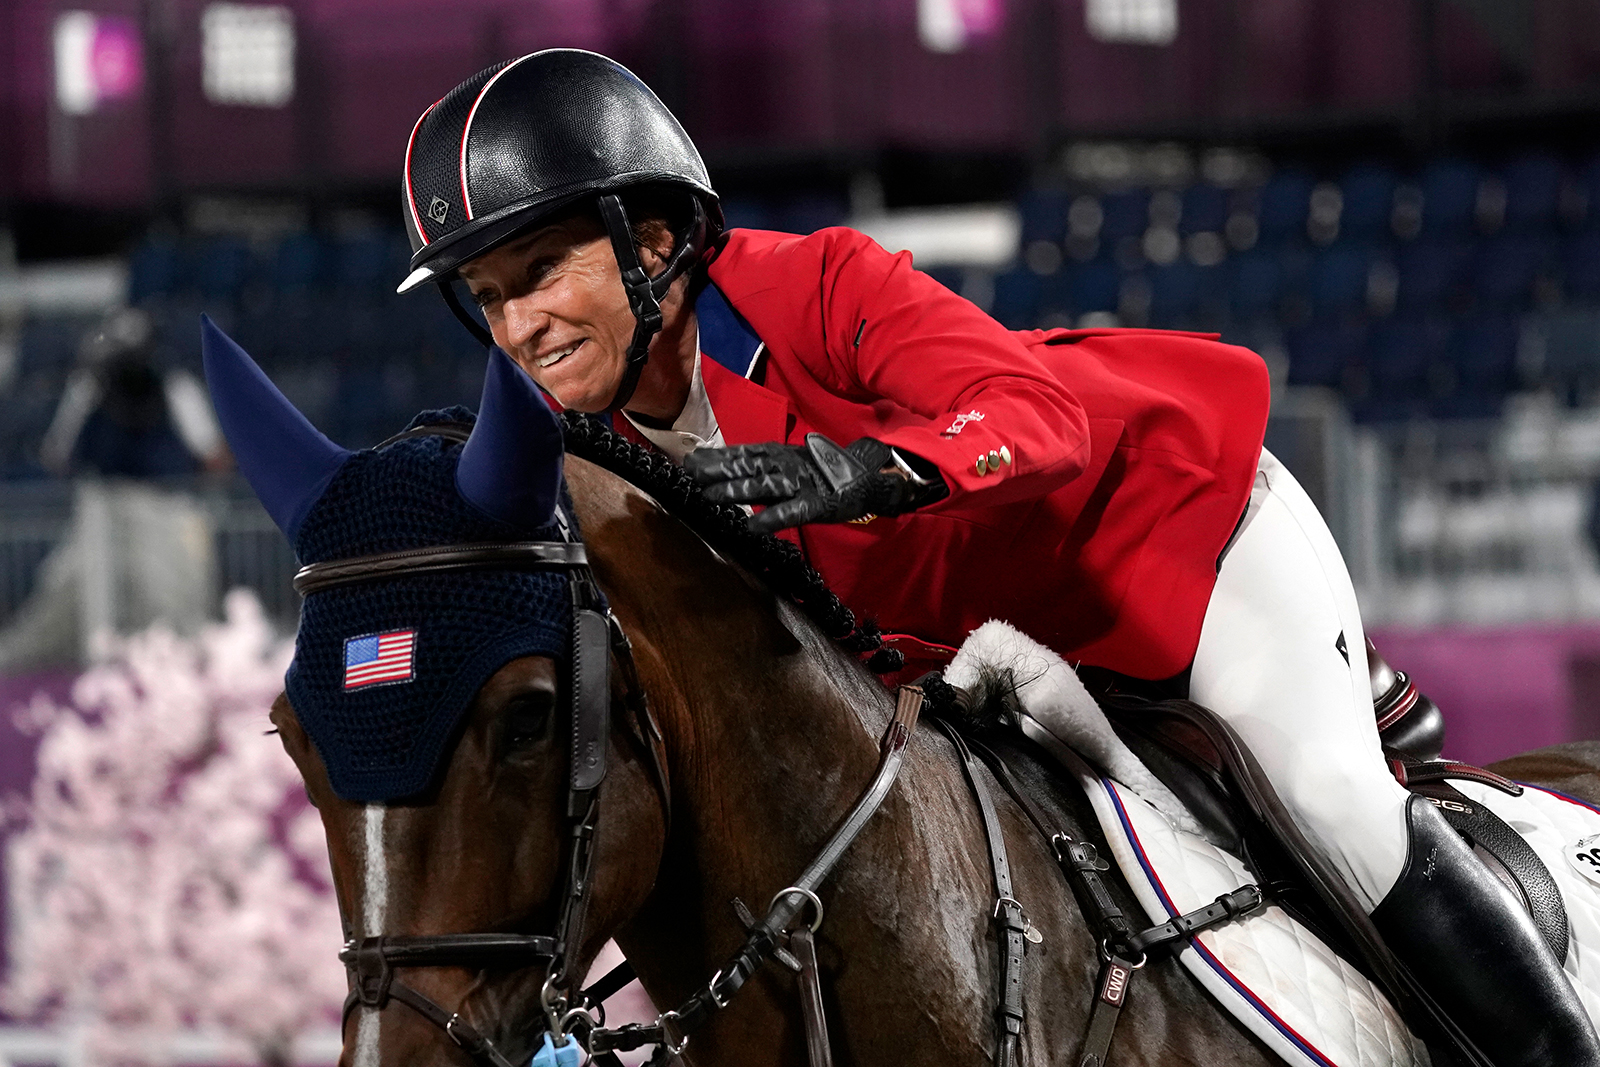 United States' Laura Kraut, riding Baloutinue, celebrates after a jump-off during the equestrian jumping team final at Equestrian Park in Tokyo at the 2020 Summer Olympics, on August 7, in Tokyo.